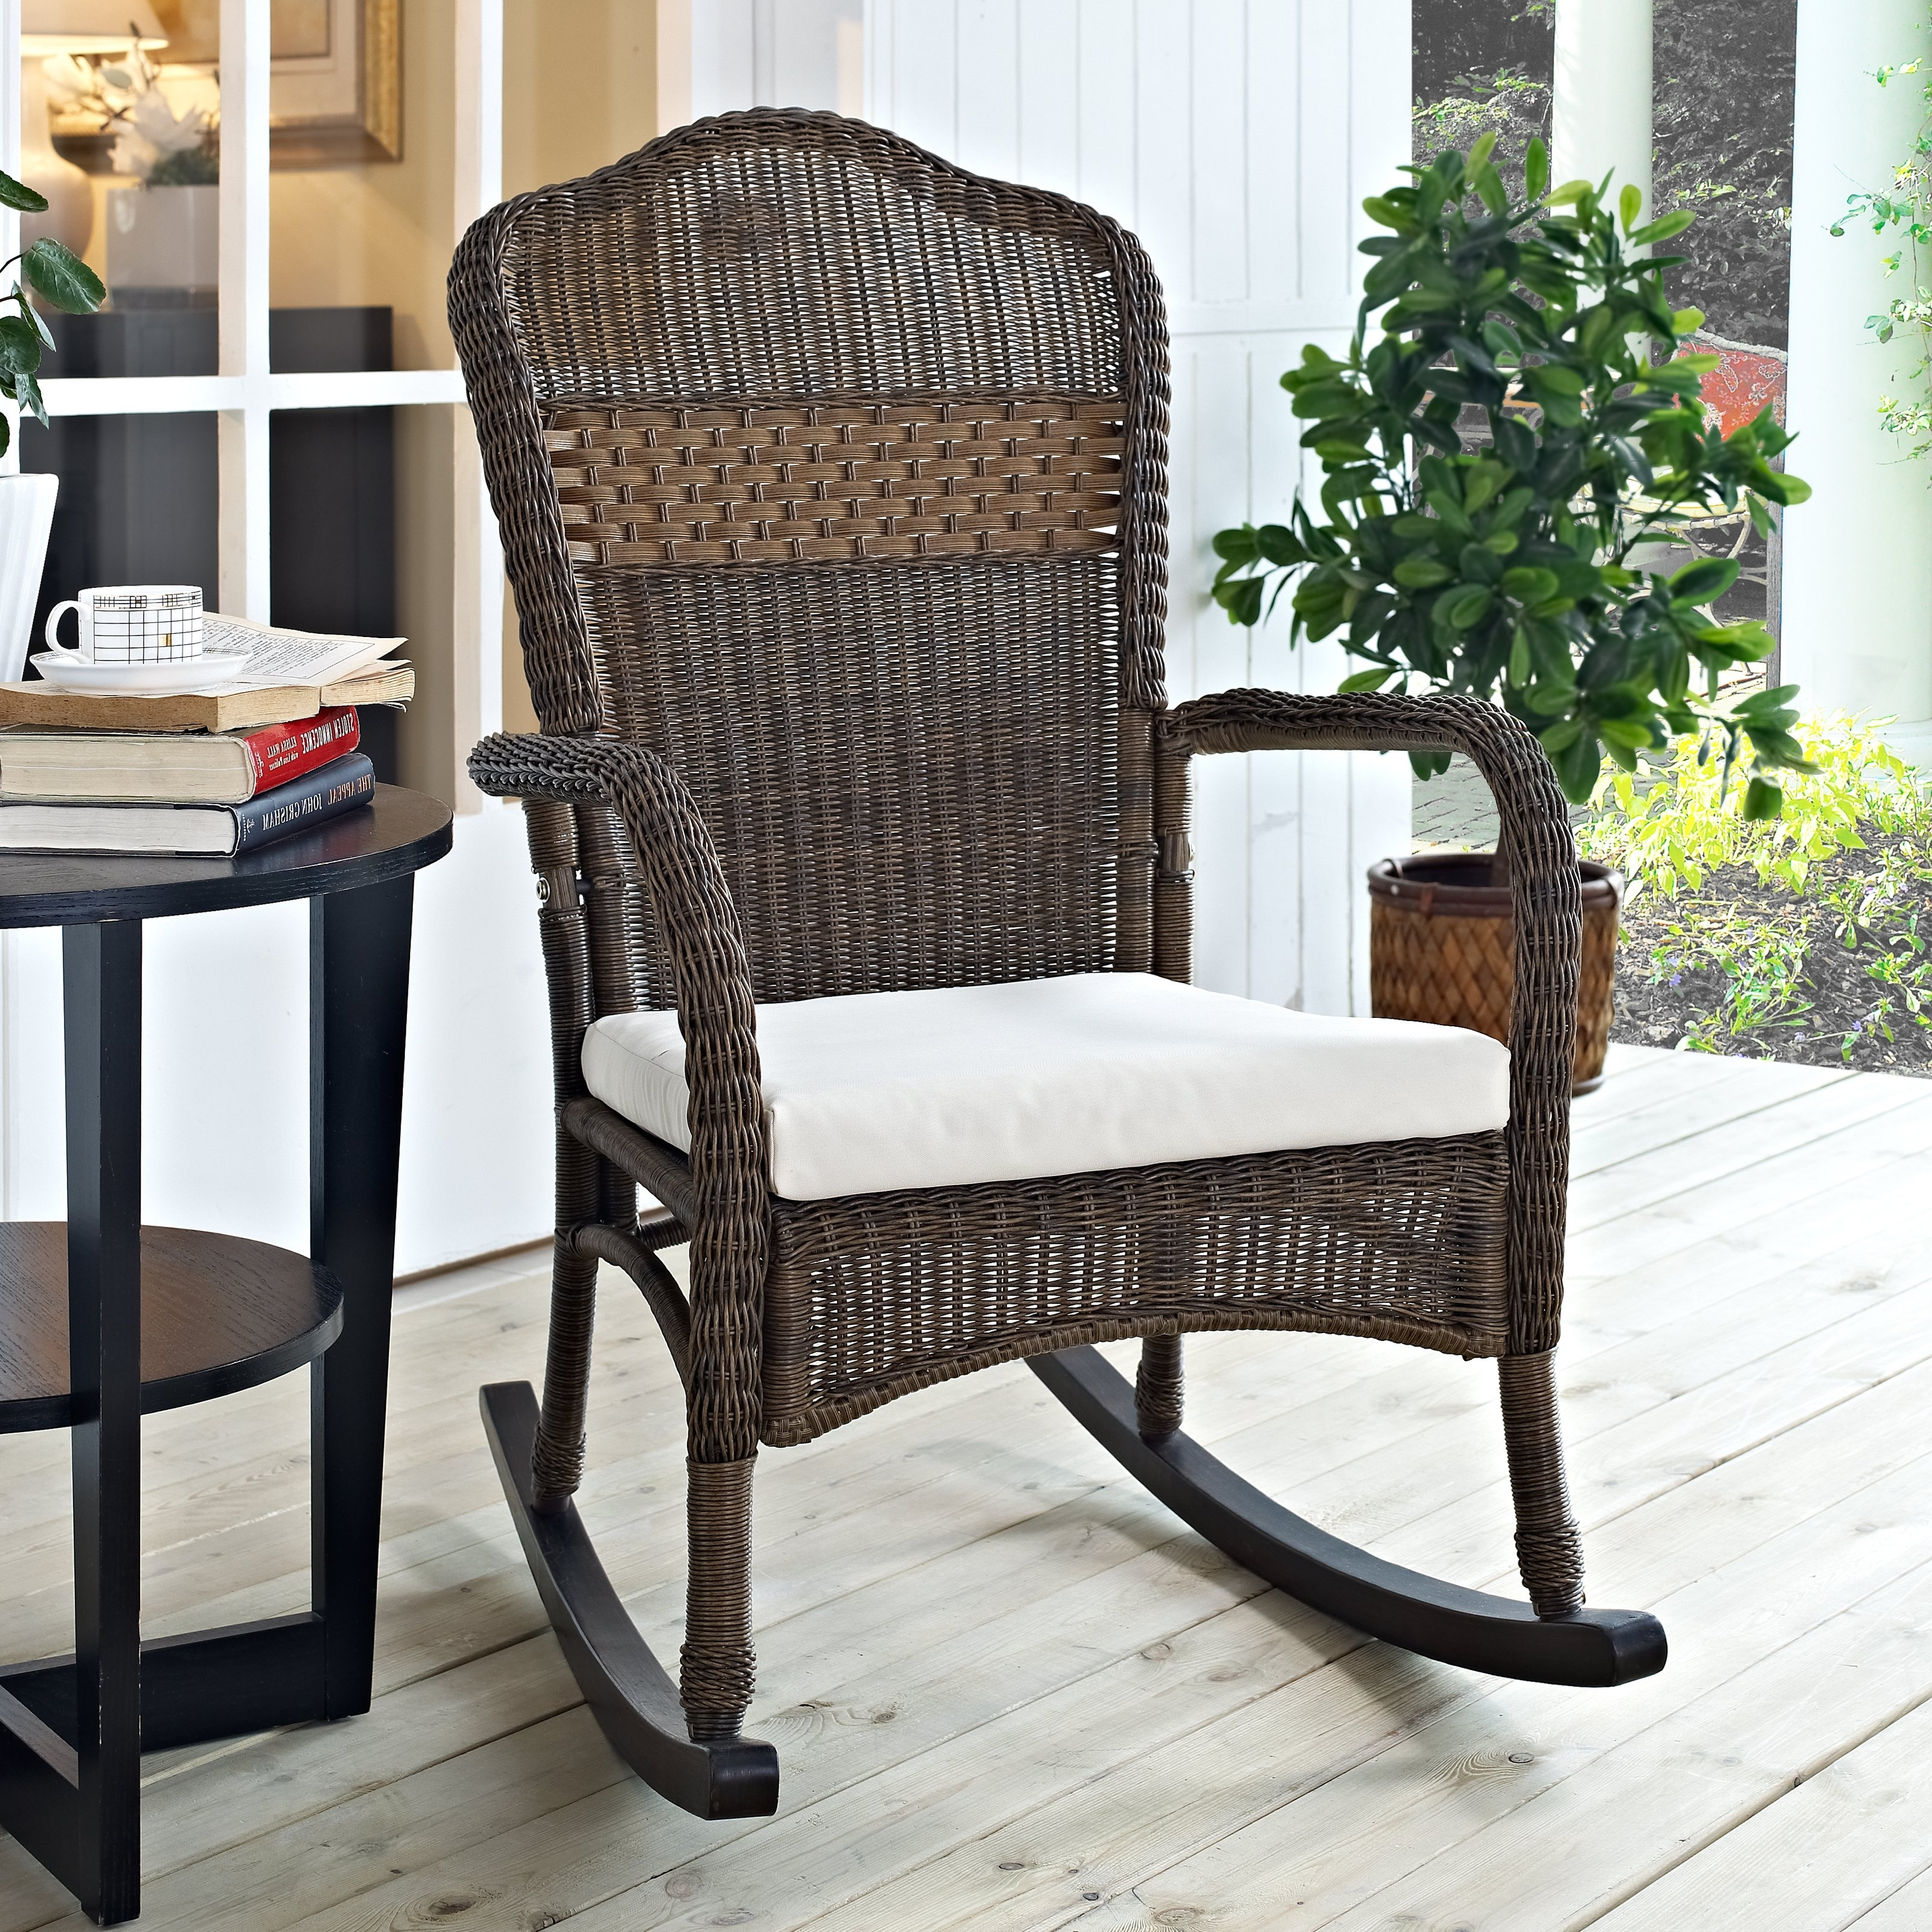 Coral Coast Mocha Resin Wicker Rocking Chair With Beige Cushion In Trendy Outdoor Rocking Chairs With Cushions (View 2 of 20)